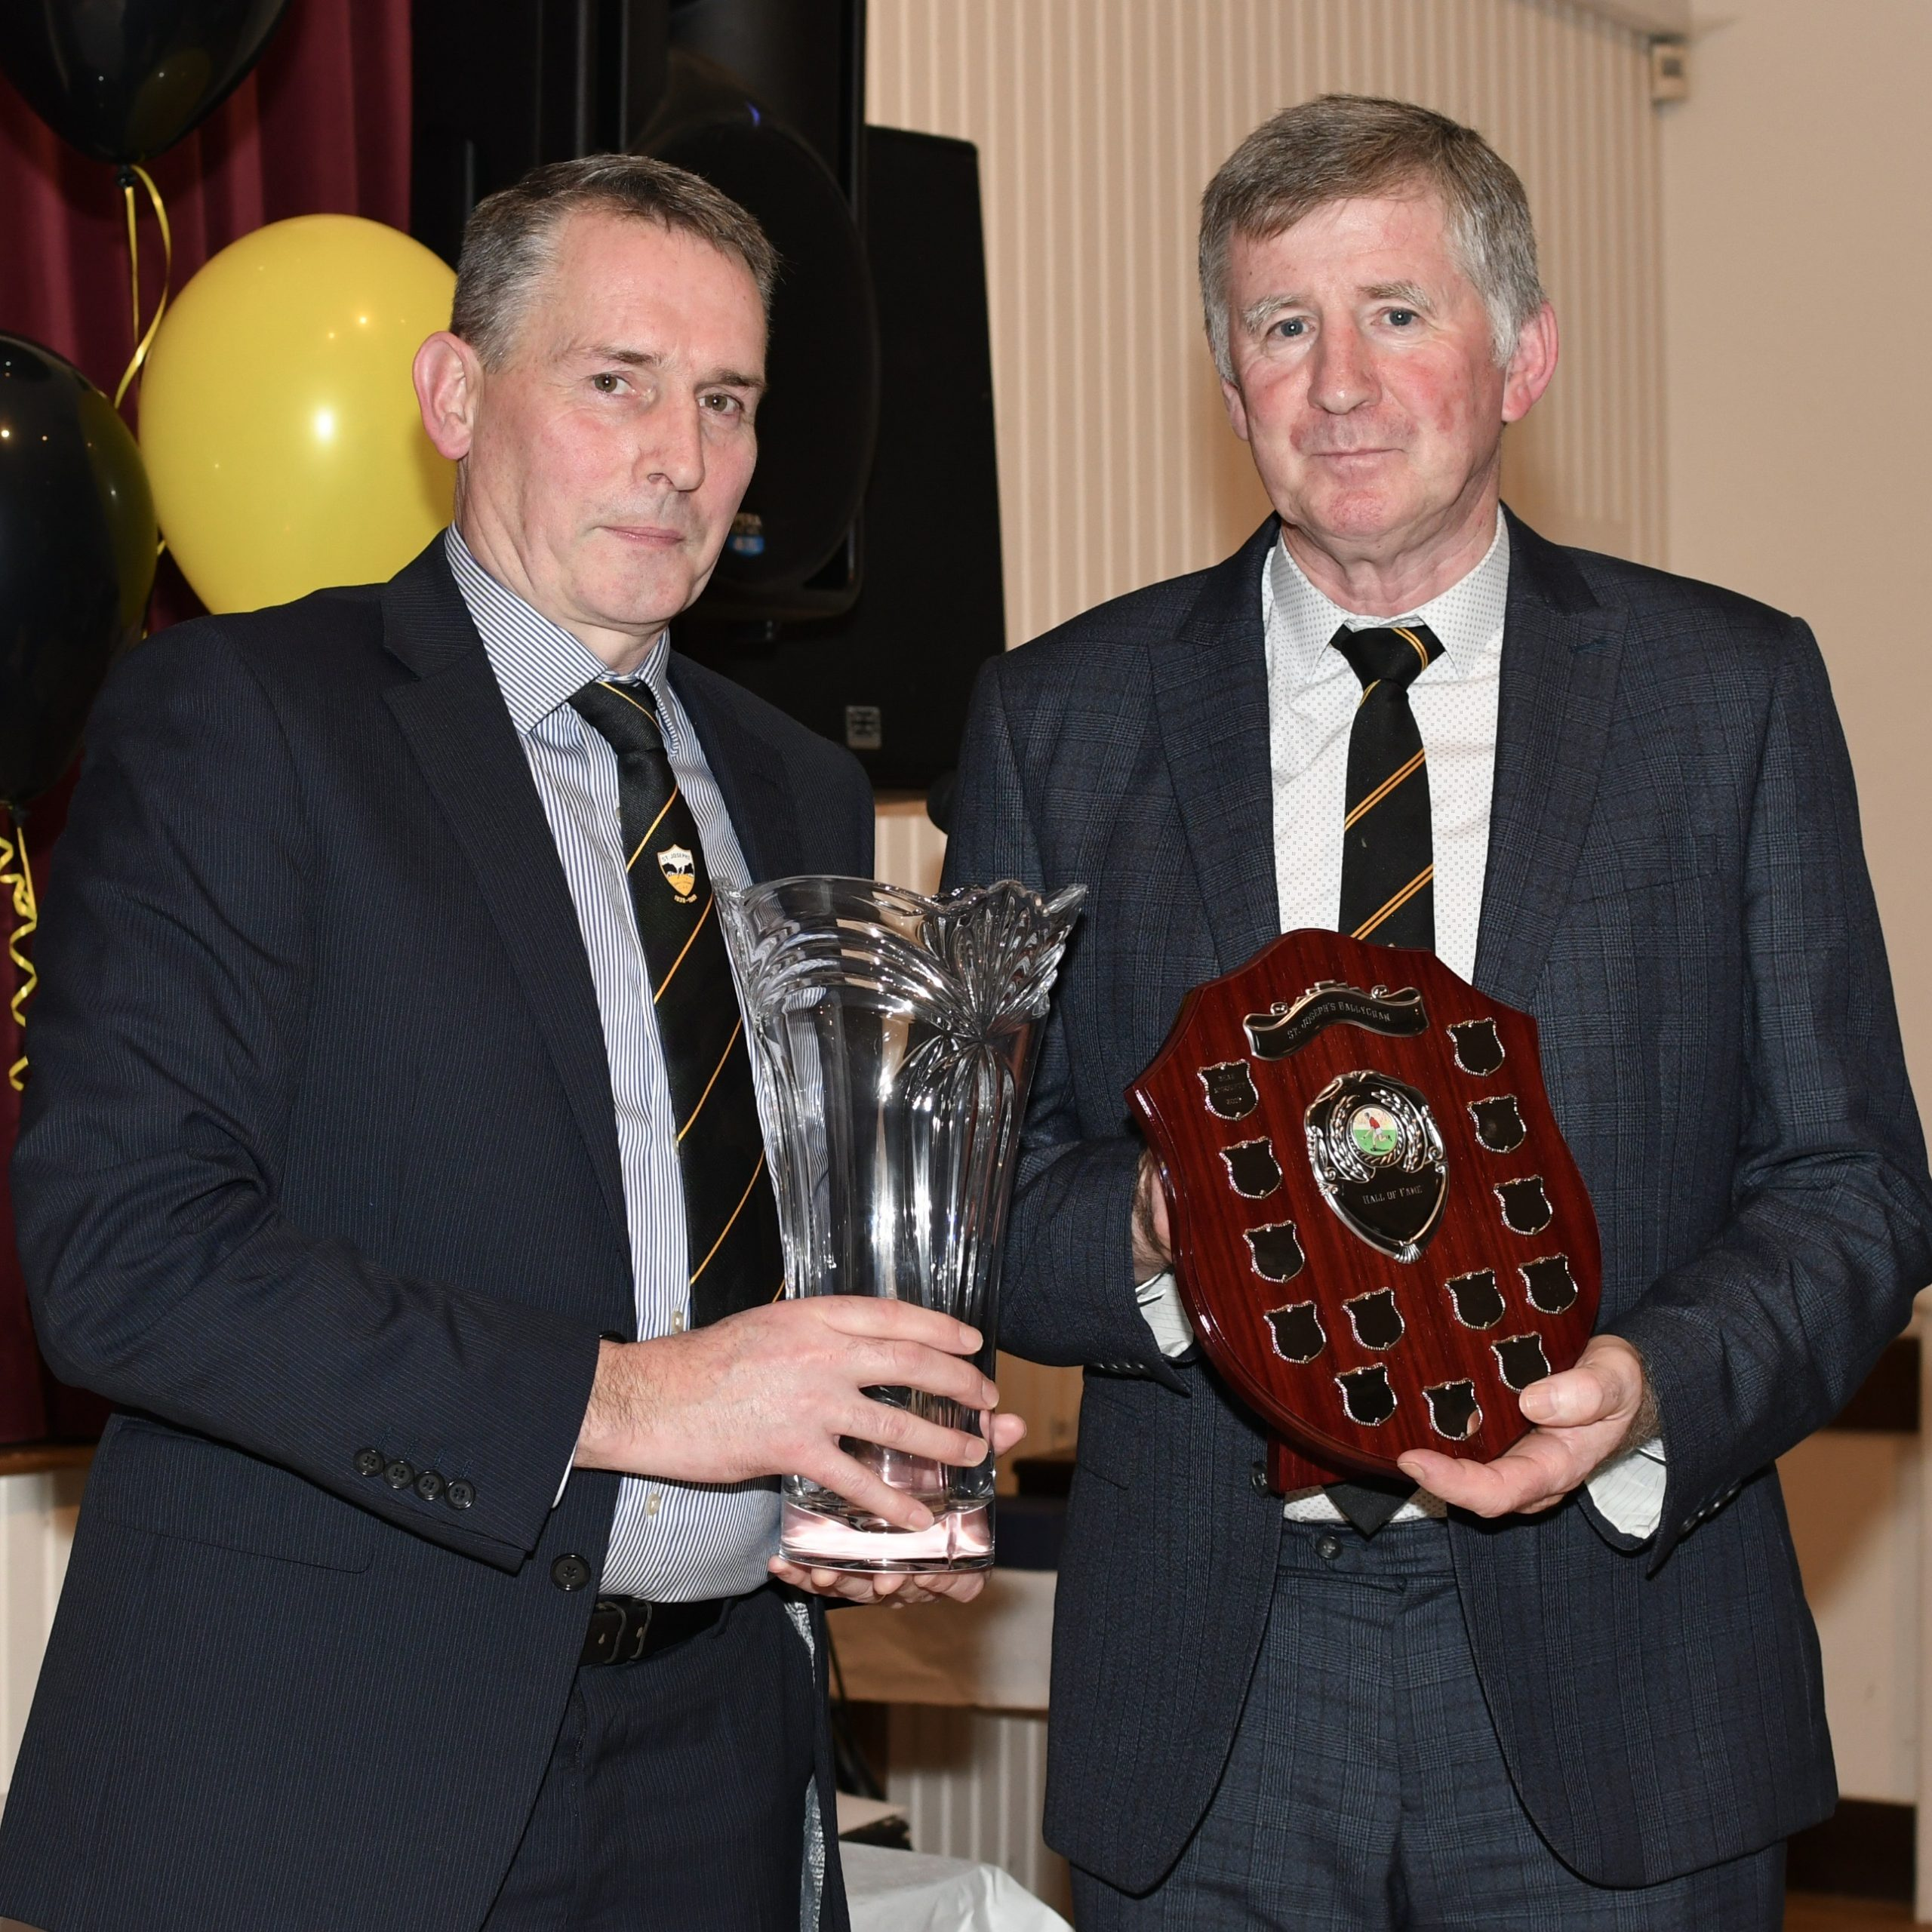 Sean McGourty becomes Ballycran's latest Inductee into the Hall of Fame